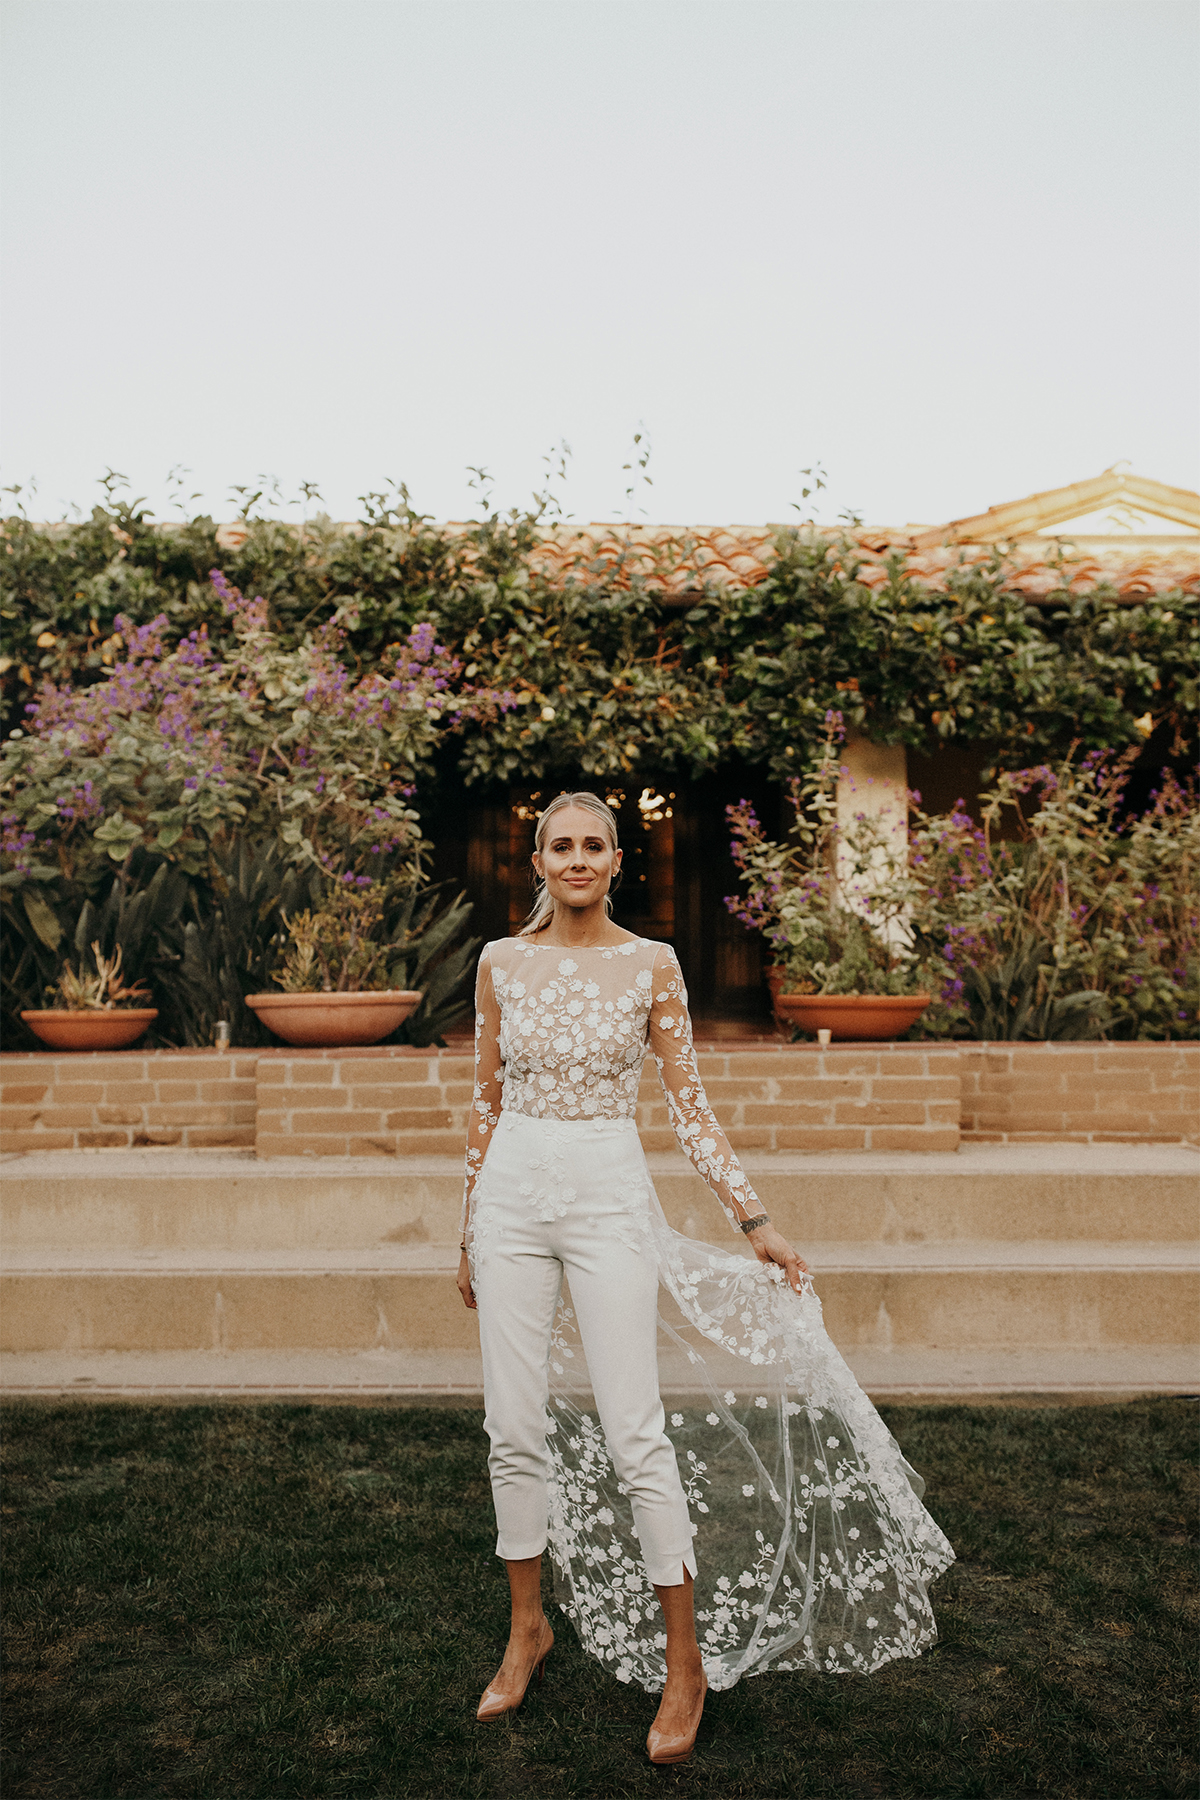 Rime Arodaky patsy white lace embroidered tulle and crepe bridal jumpsuit wedding rehearsal dinner outfit, wedding weekend bridal outfit inspiration